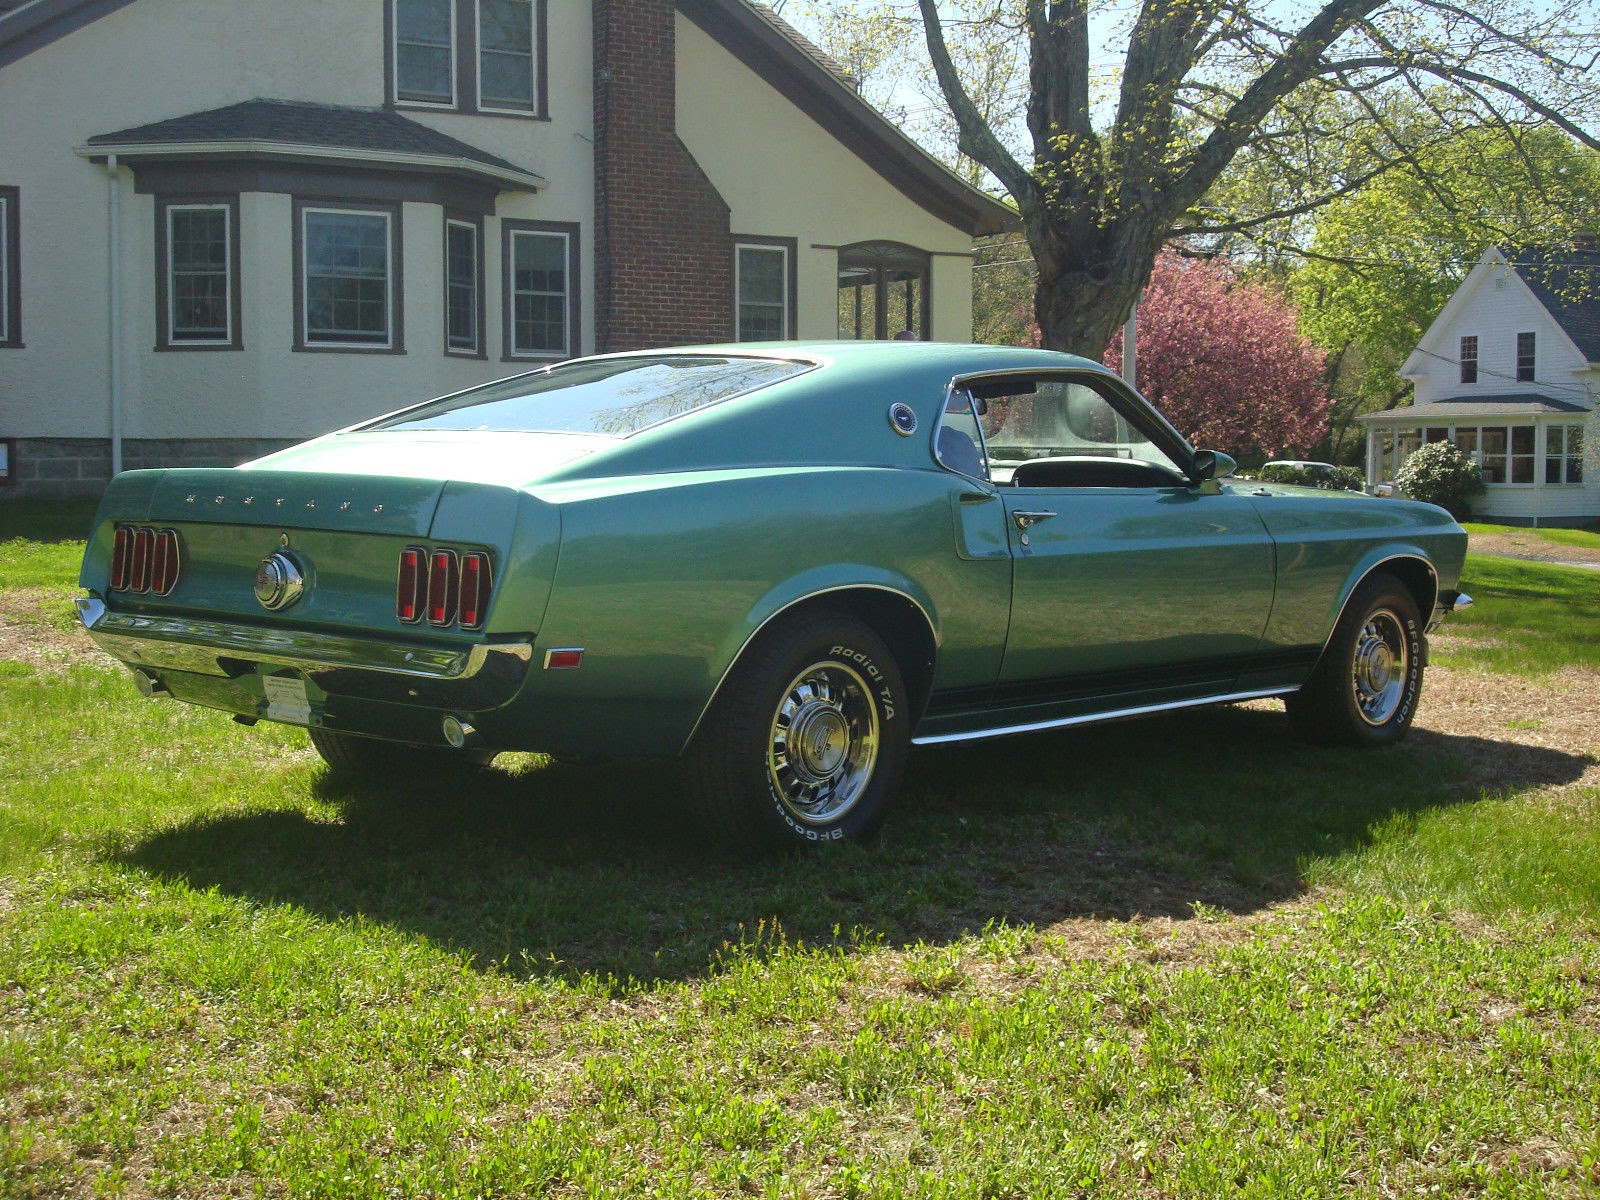 1969 mustang gt fastback rotisserie restored for sale american muscle cars. Black Bedroom Furniture Sets. Home Design Ideas